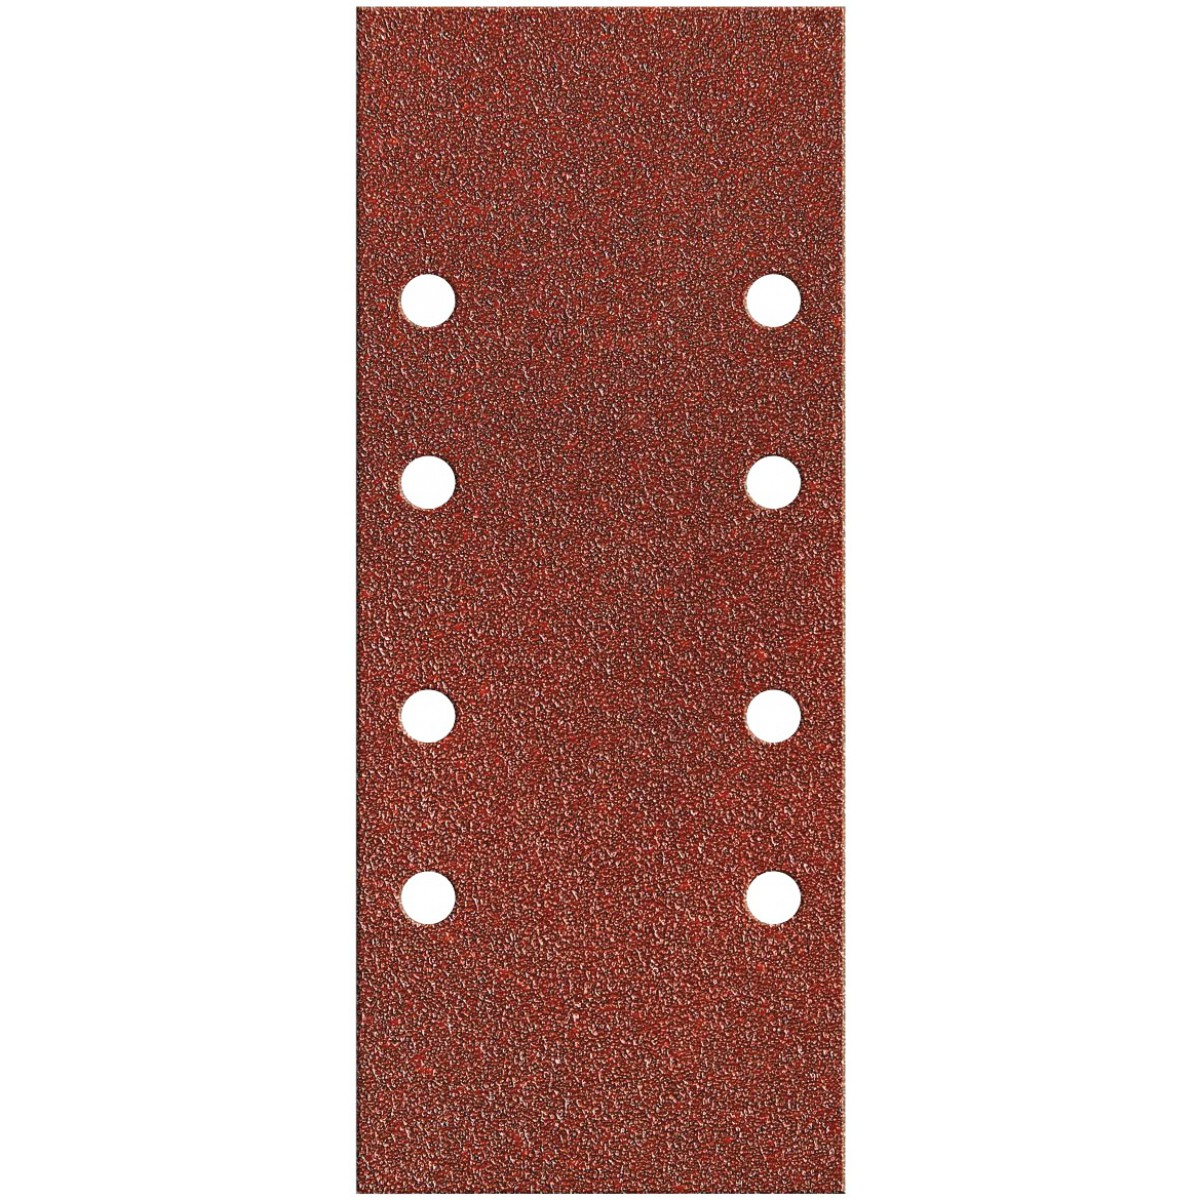 Patin auto-agrippant 93 x 185 mm 8 trous SCID - Grain 80 - Vendu par 8